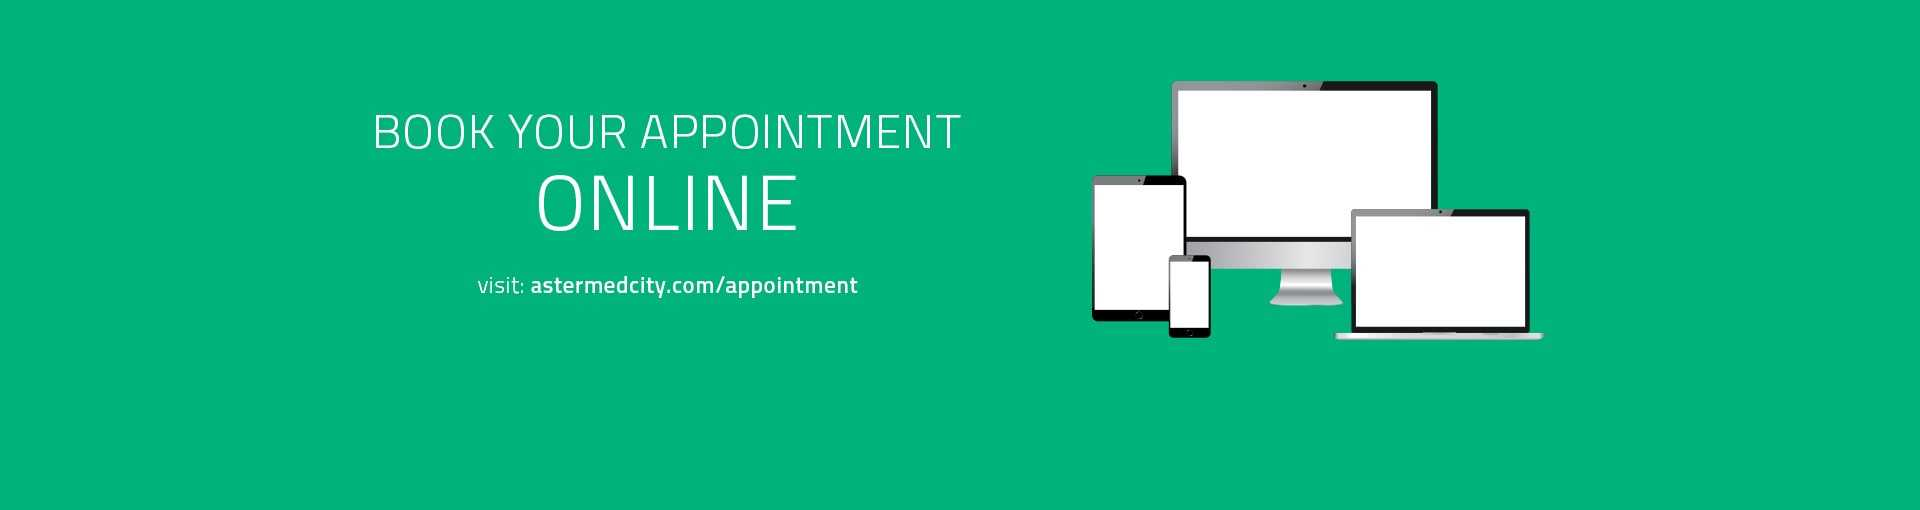 1920x510 7 online appointment min